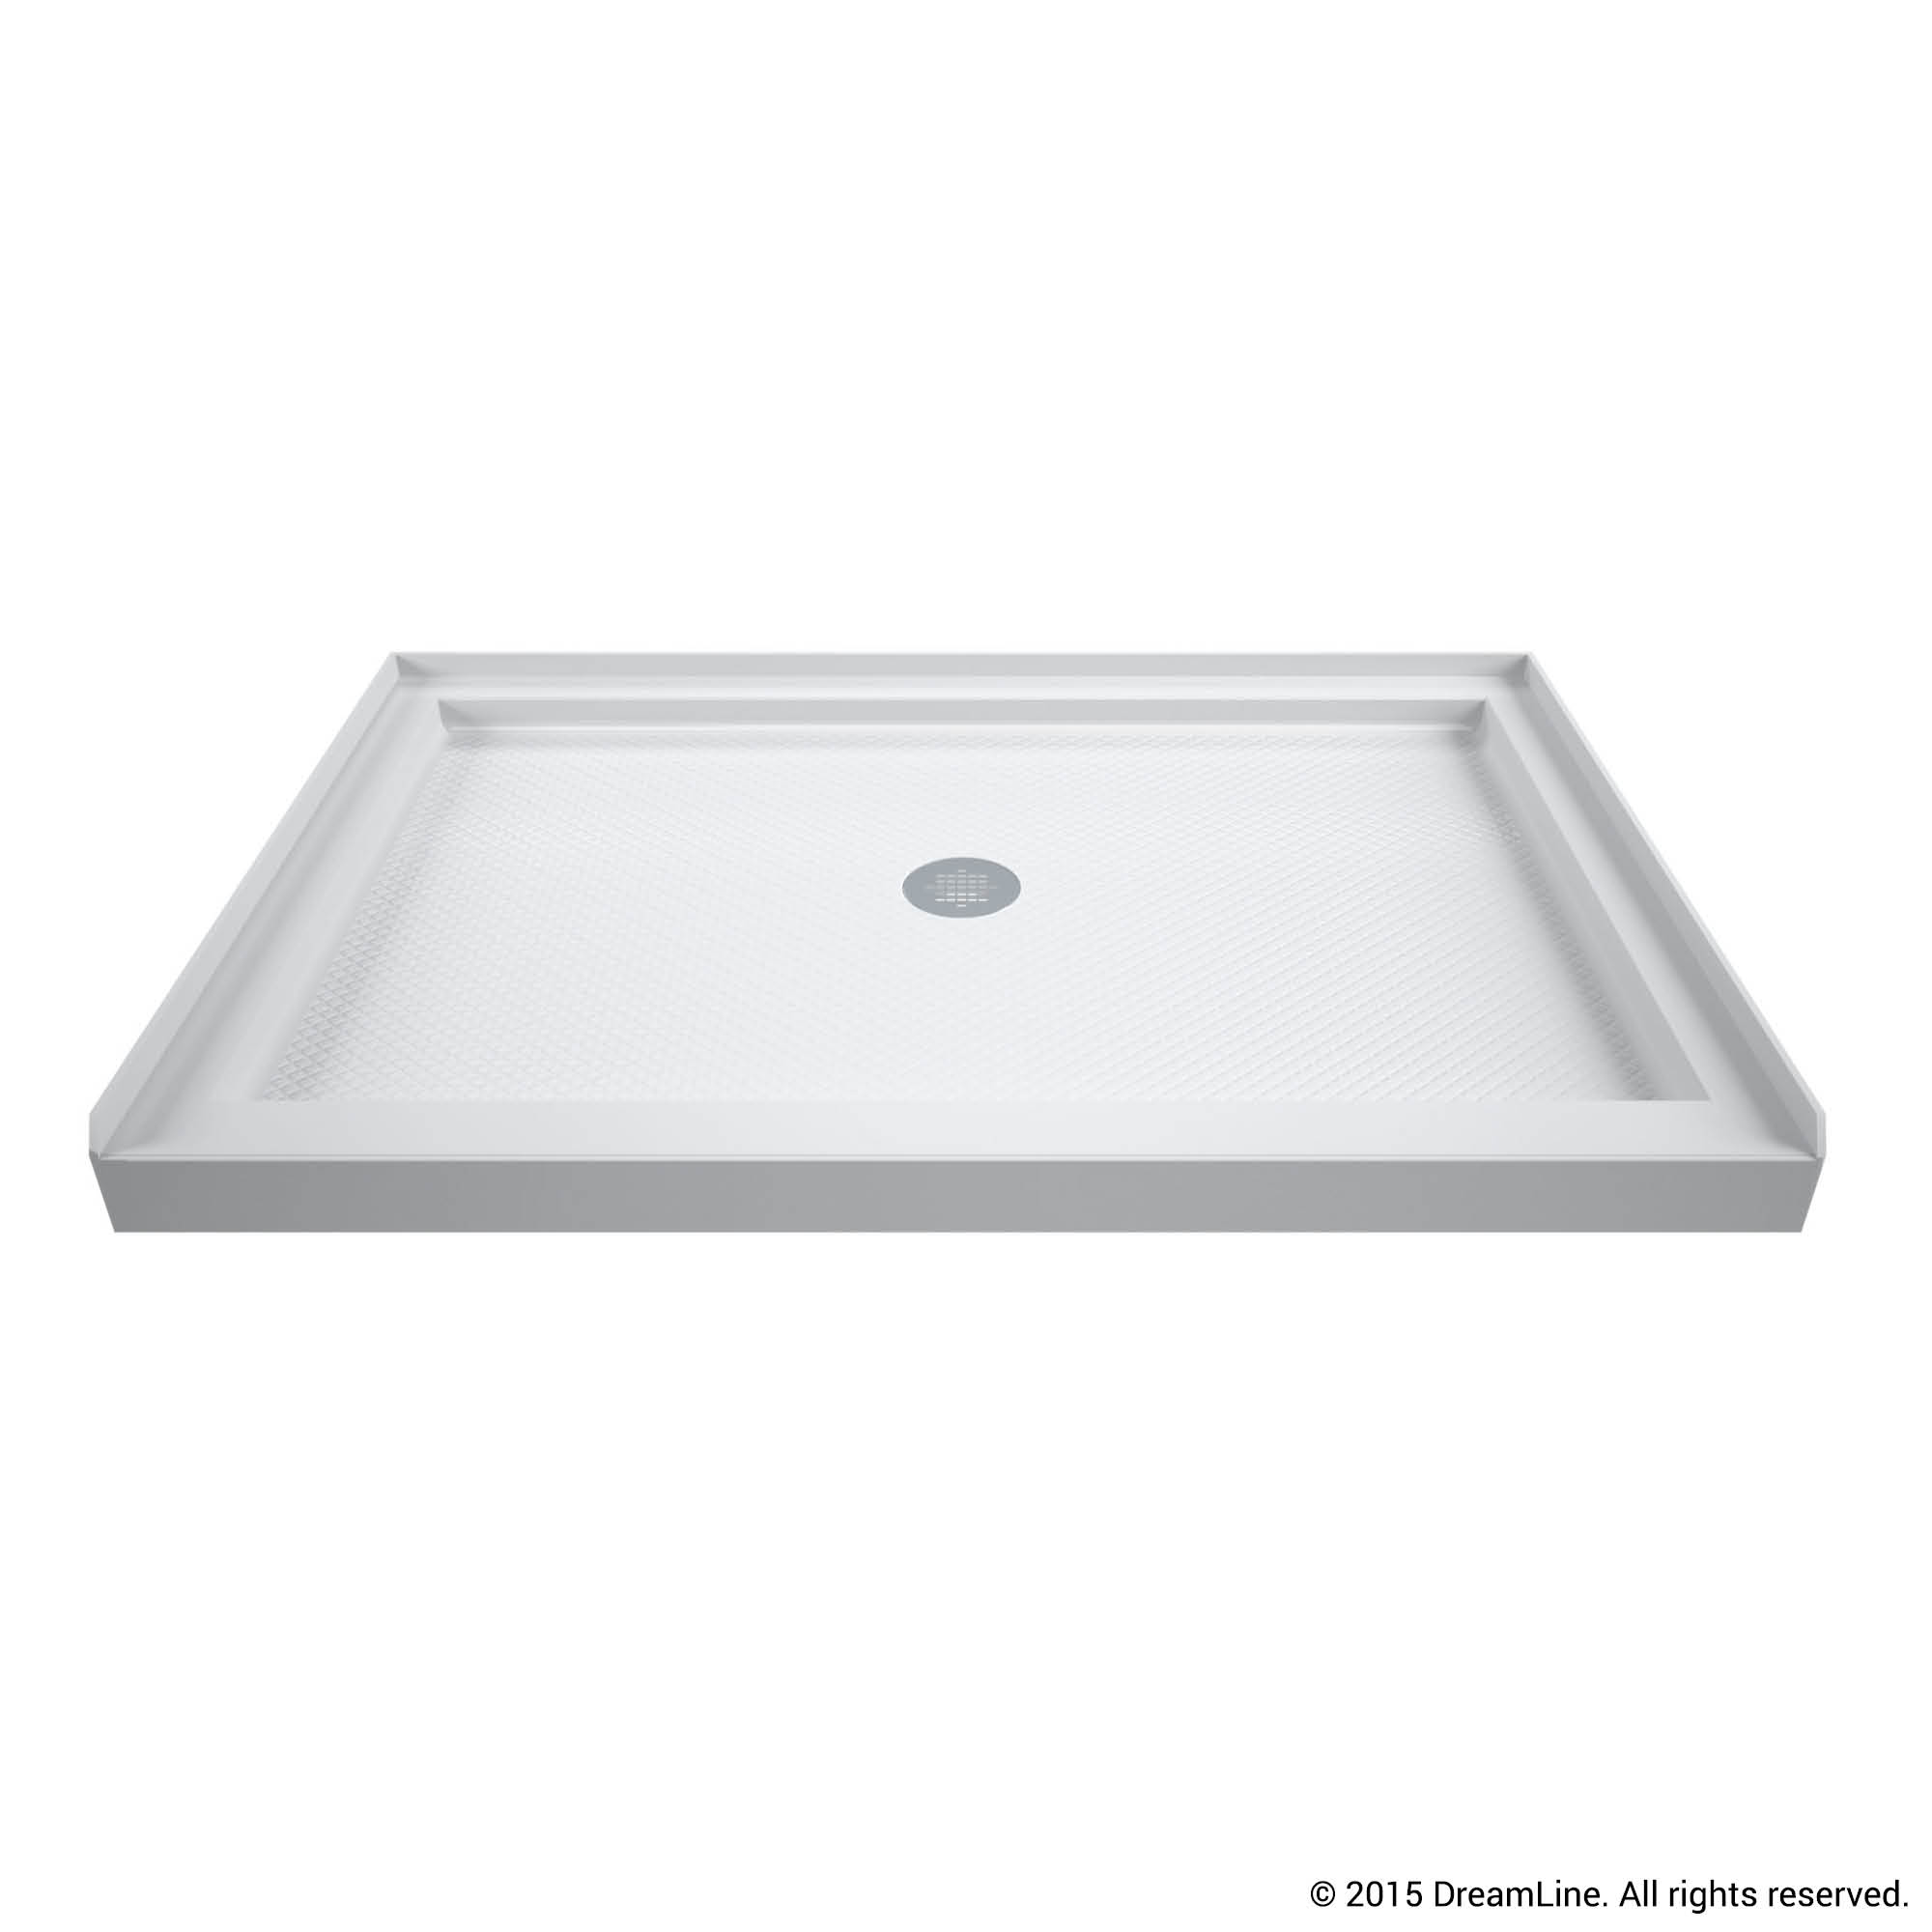 DreamLine SlimLine 34 in. D x 48 in. W x 2 3/4 in. H Right Drain Double Threshold Shower Base in White